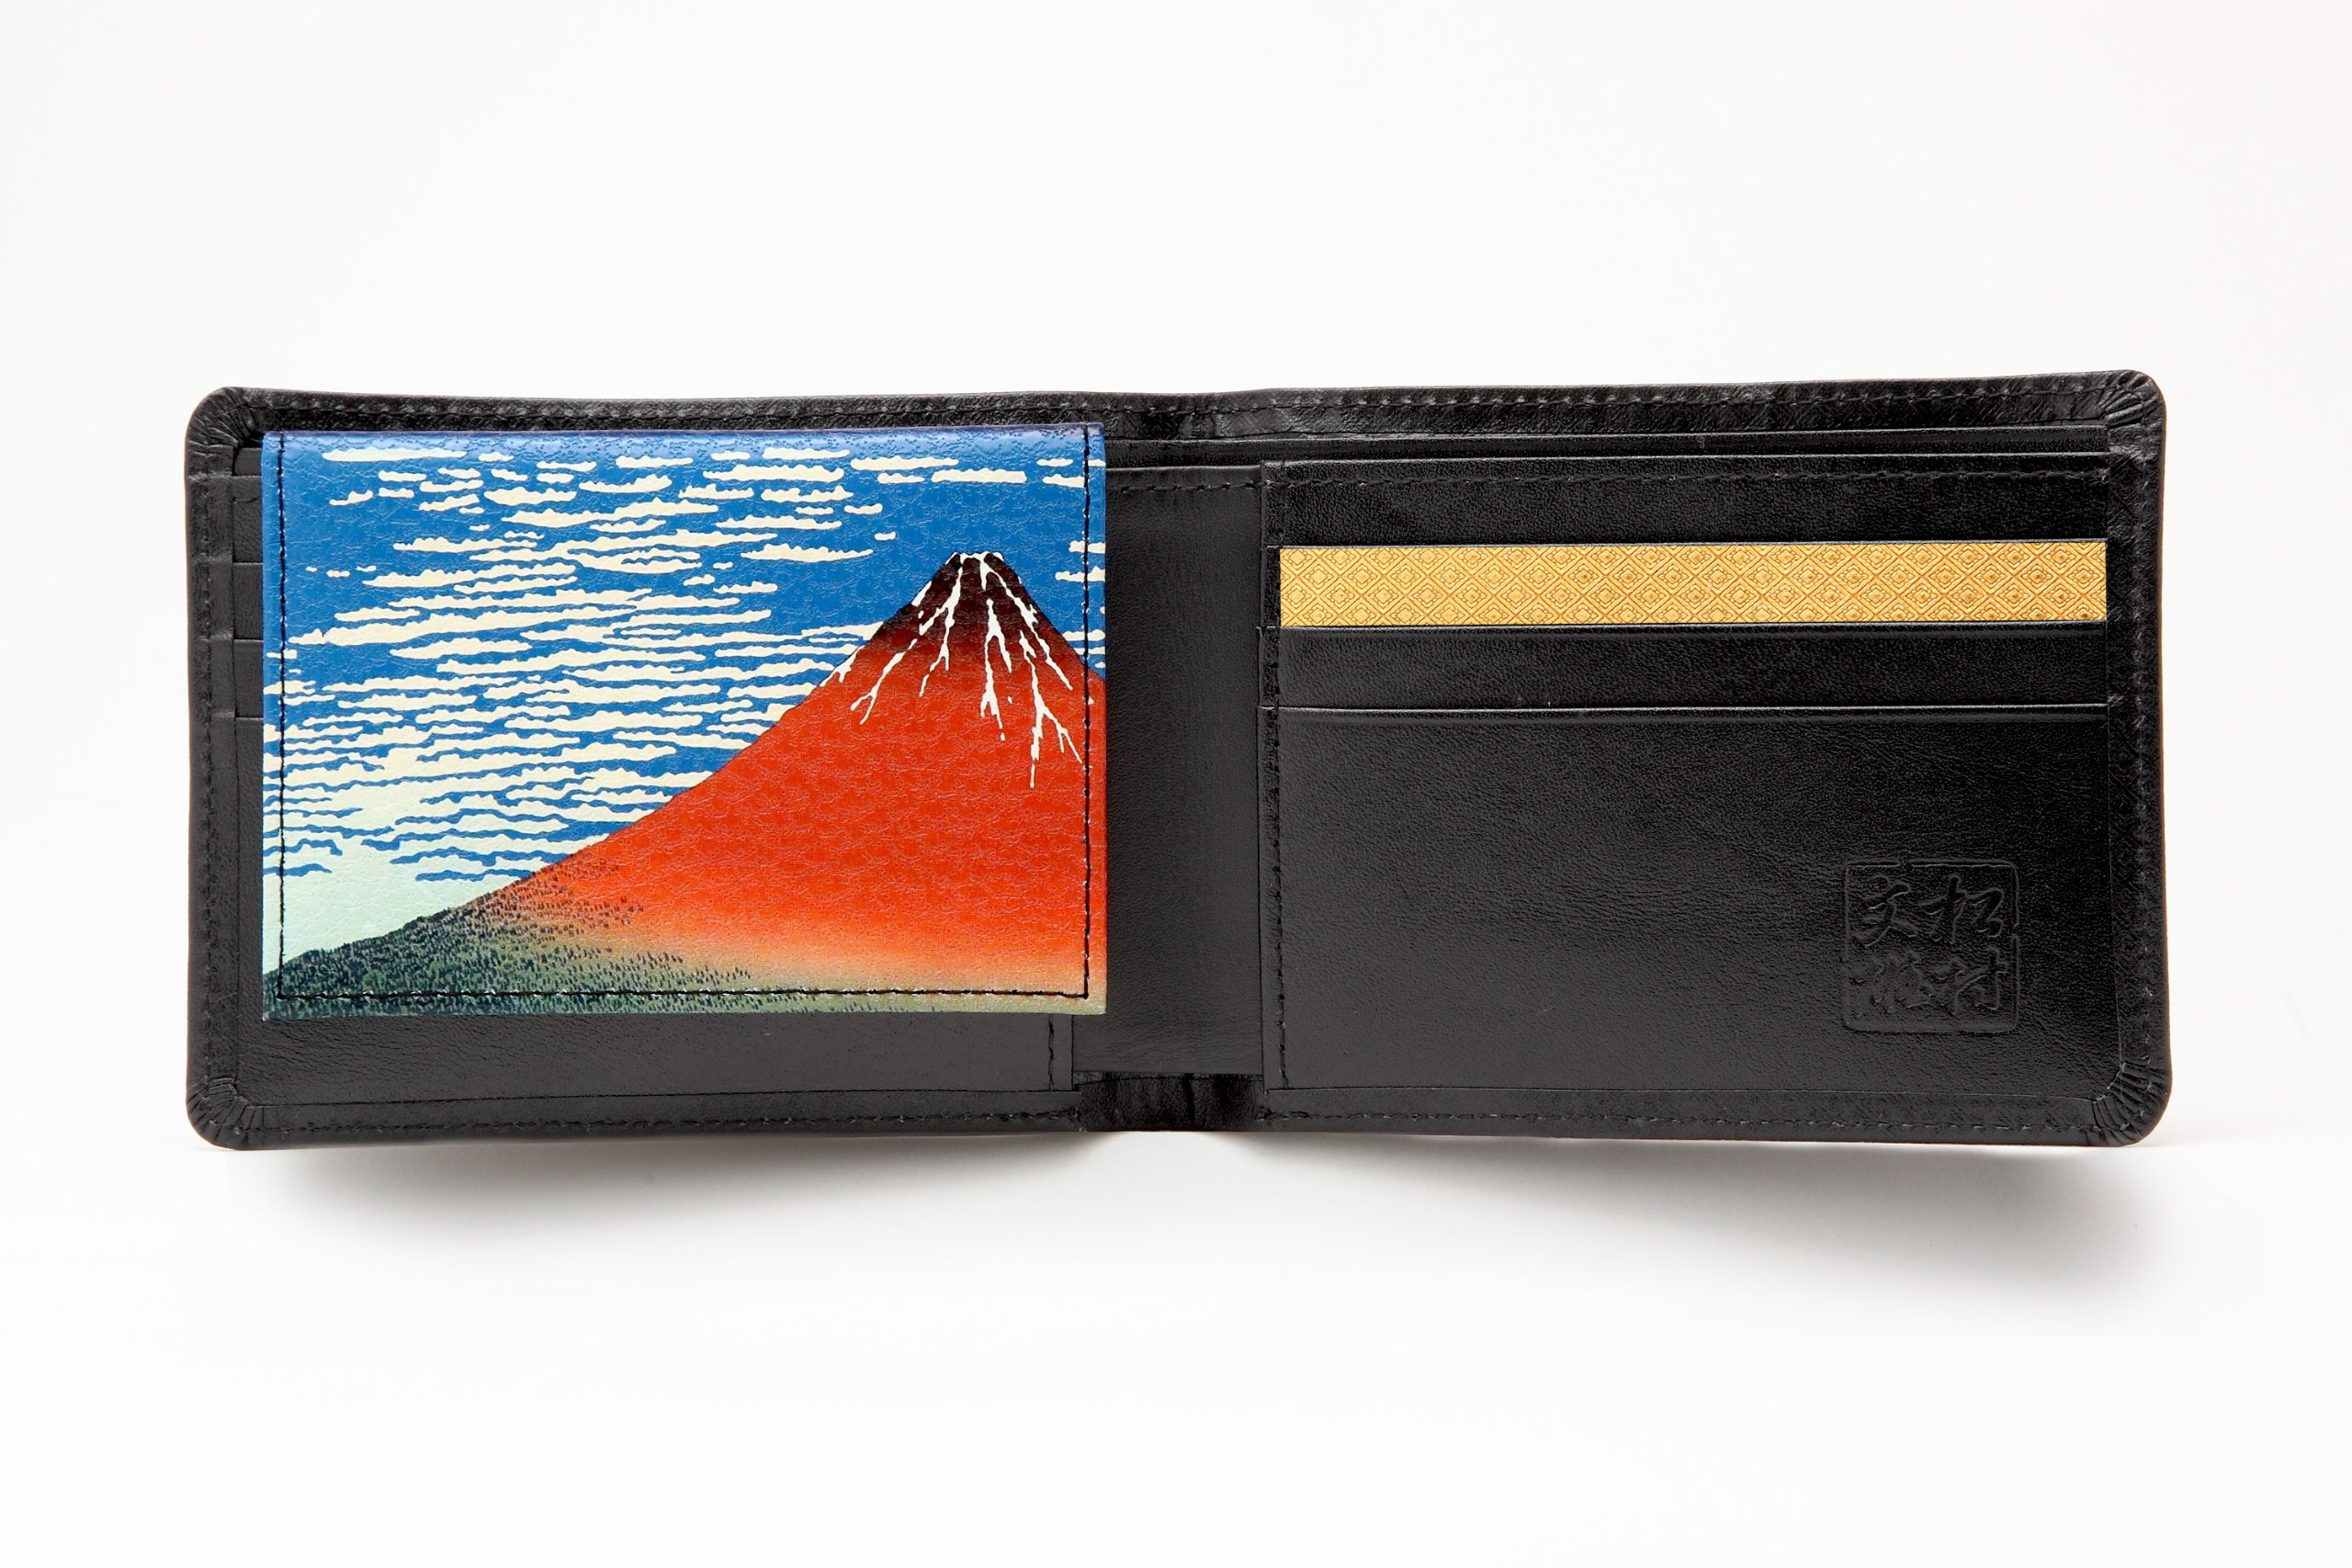 Matsumura Fumio Production: Men's Two Bi-fold Cowhide Wallet/fine Wind, Clear Morning (Id Case with a Japanese-style Painting) (Black Seal/gold/fine Wind, Clear Morning)